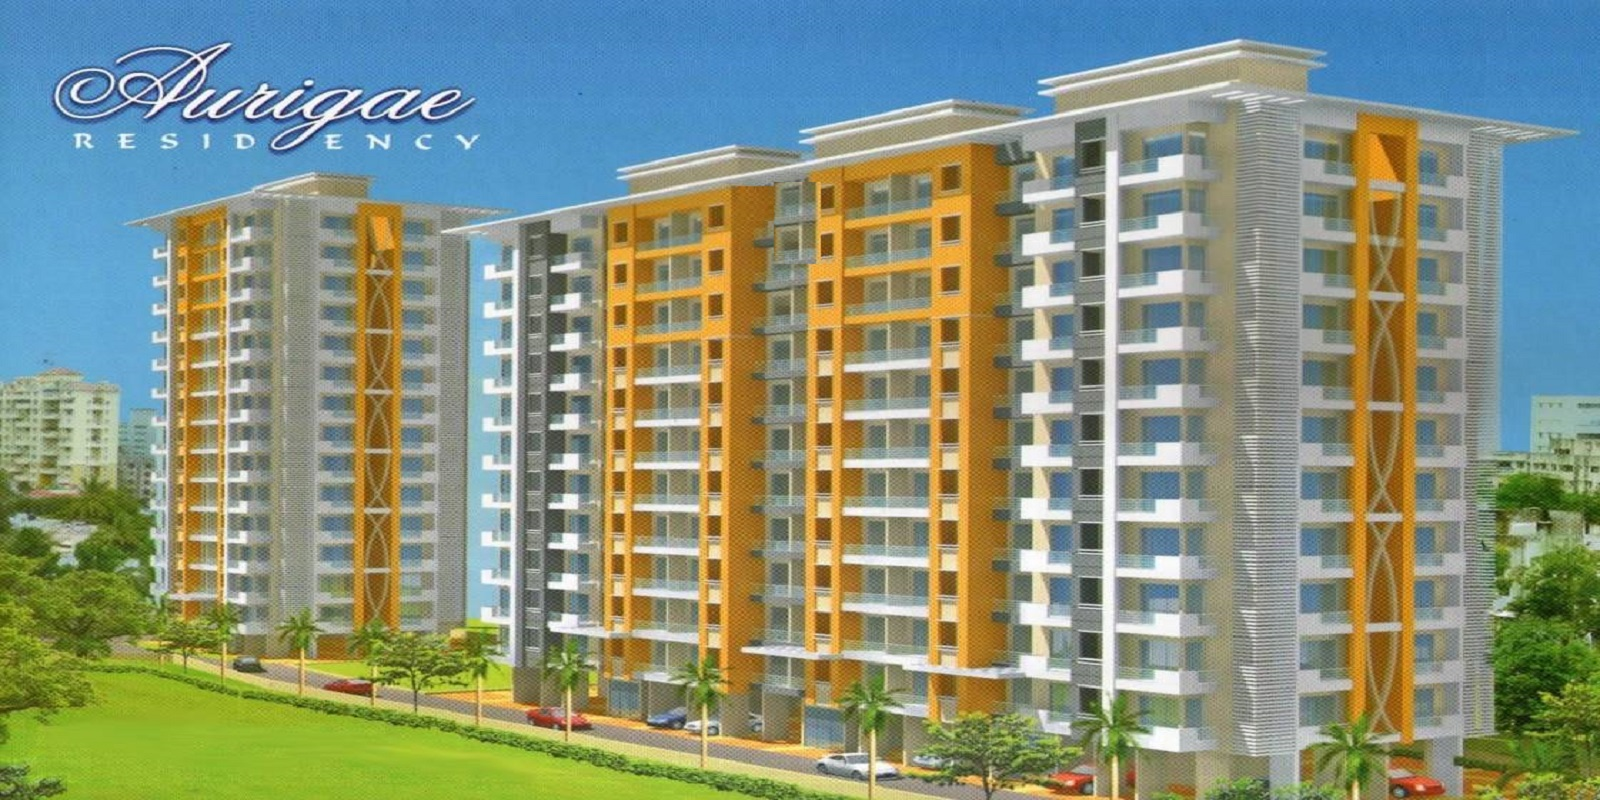 adinathay aurigae residency d wing project large image2